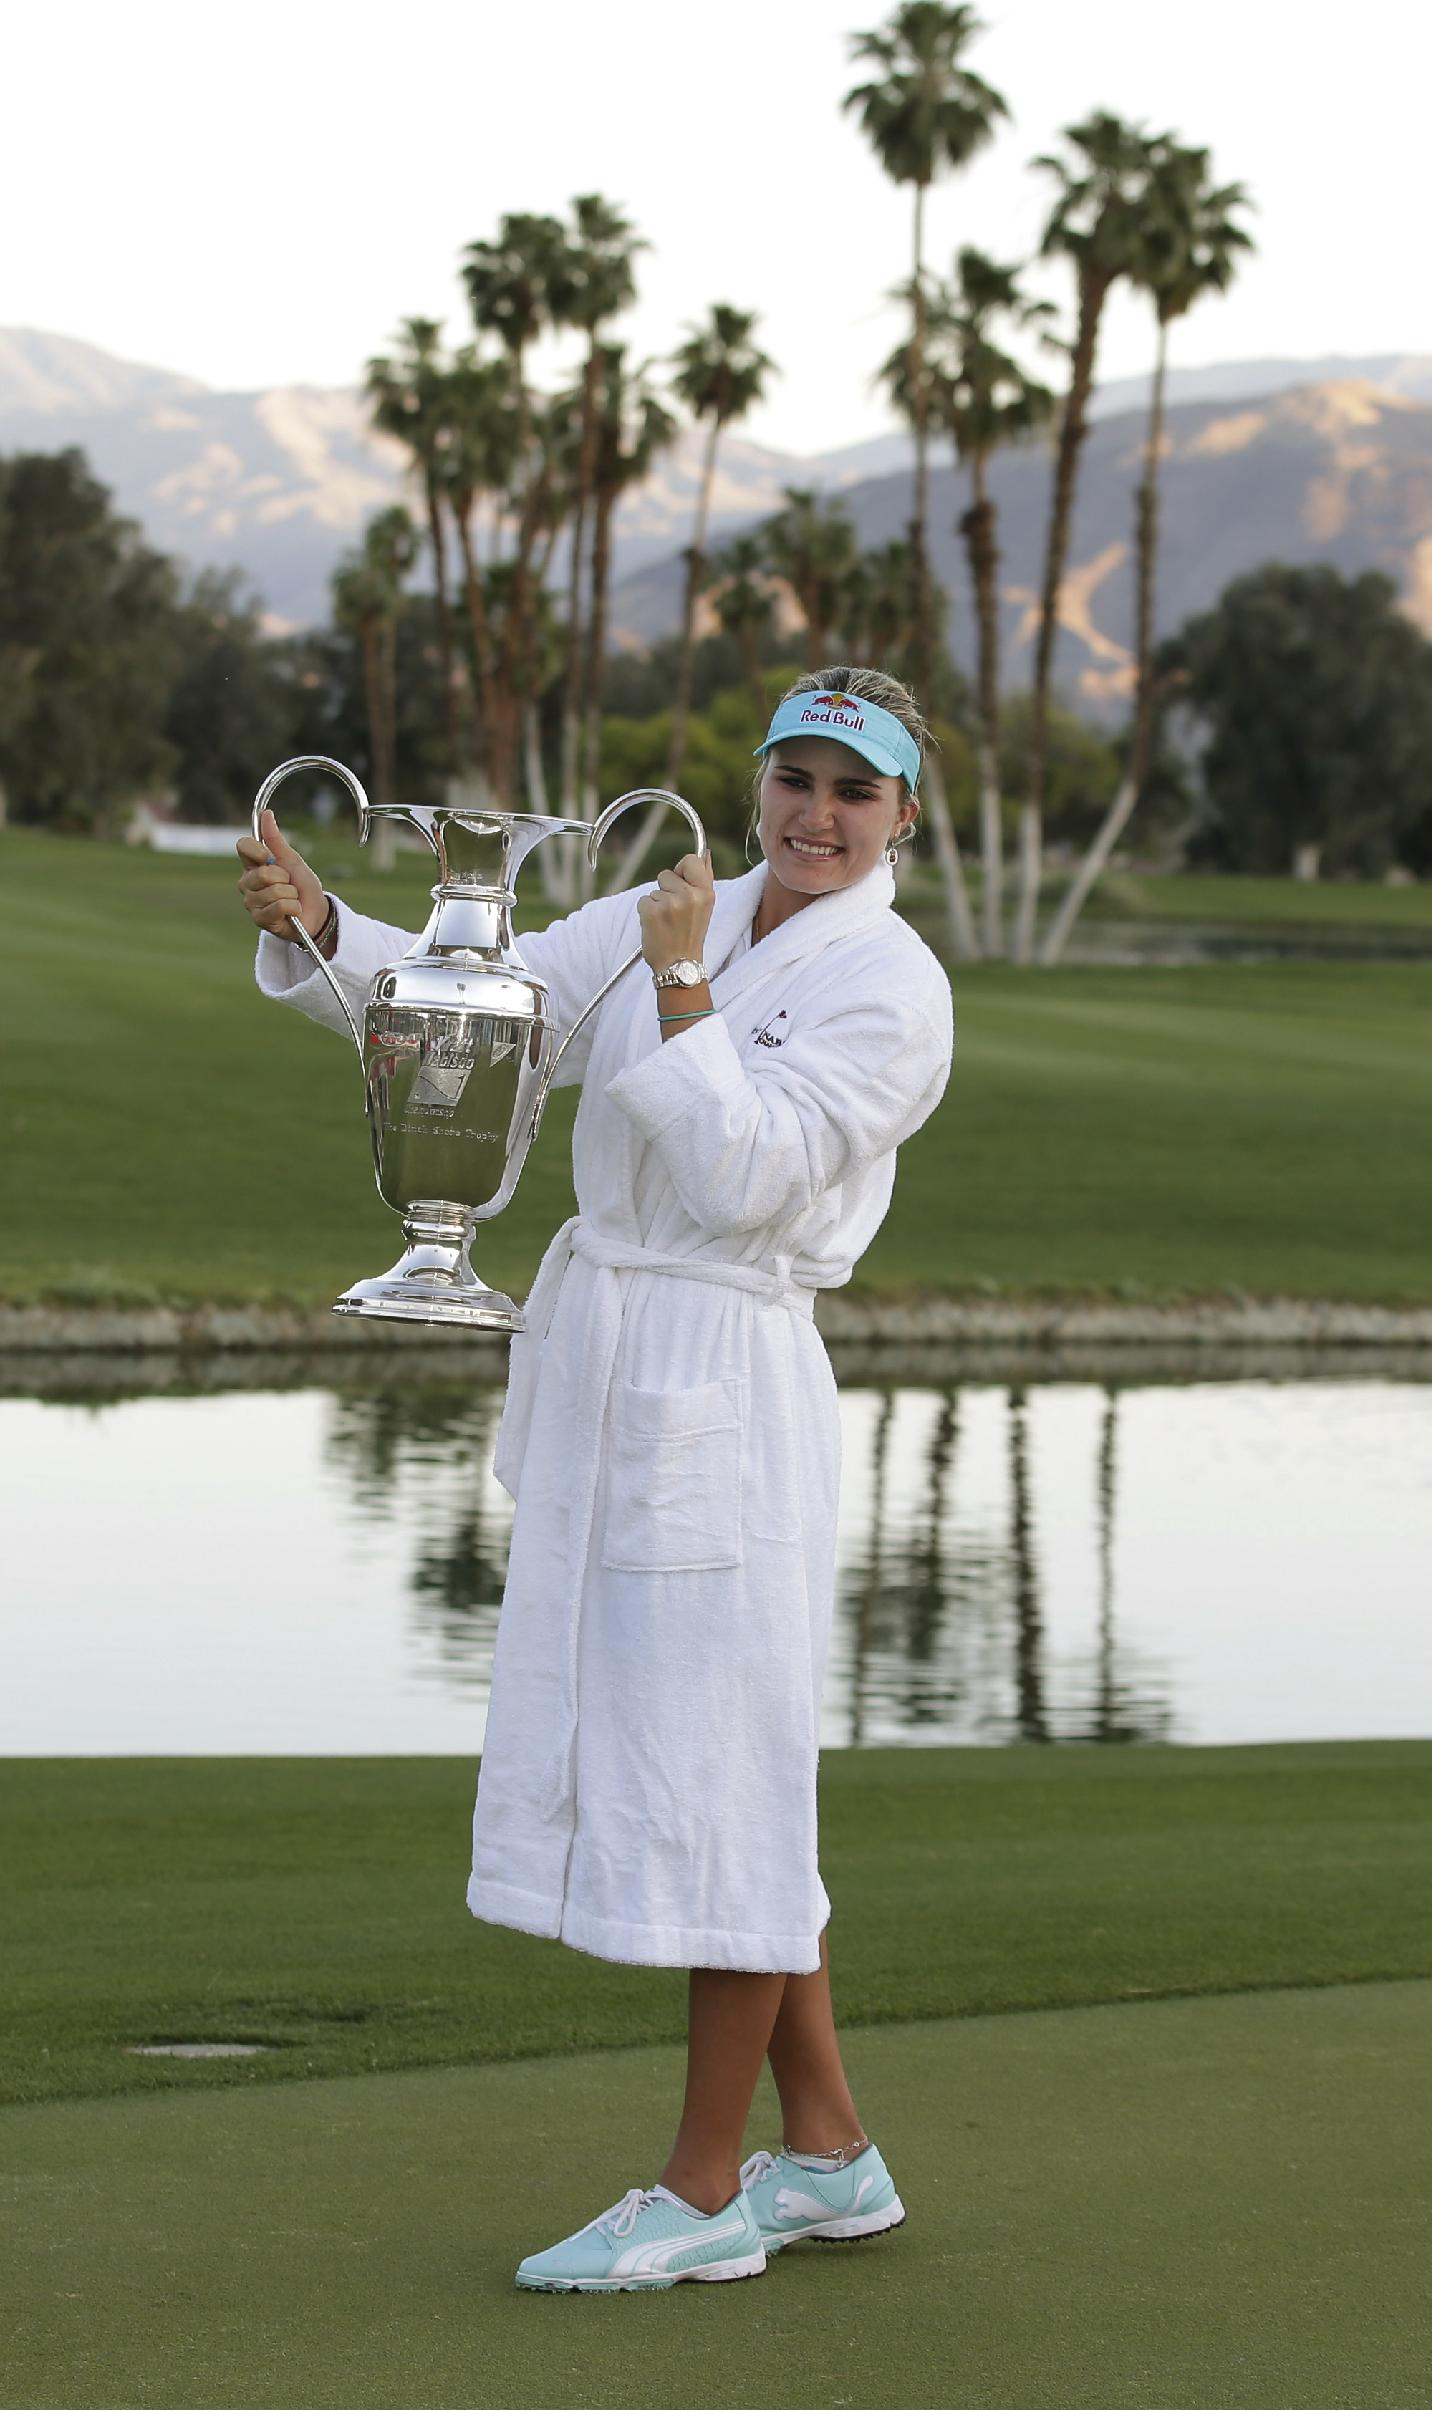 Lexi Thompson holds up the trophy after winning the Kraft Nabisco Championship golf tournament Sunday, April 6, 2014, in Rancho Mirage, Calif. Thompson defeated Michelle Wie by three strokes